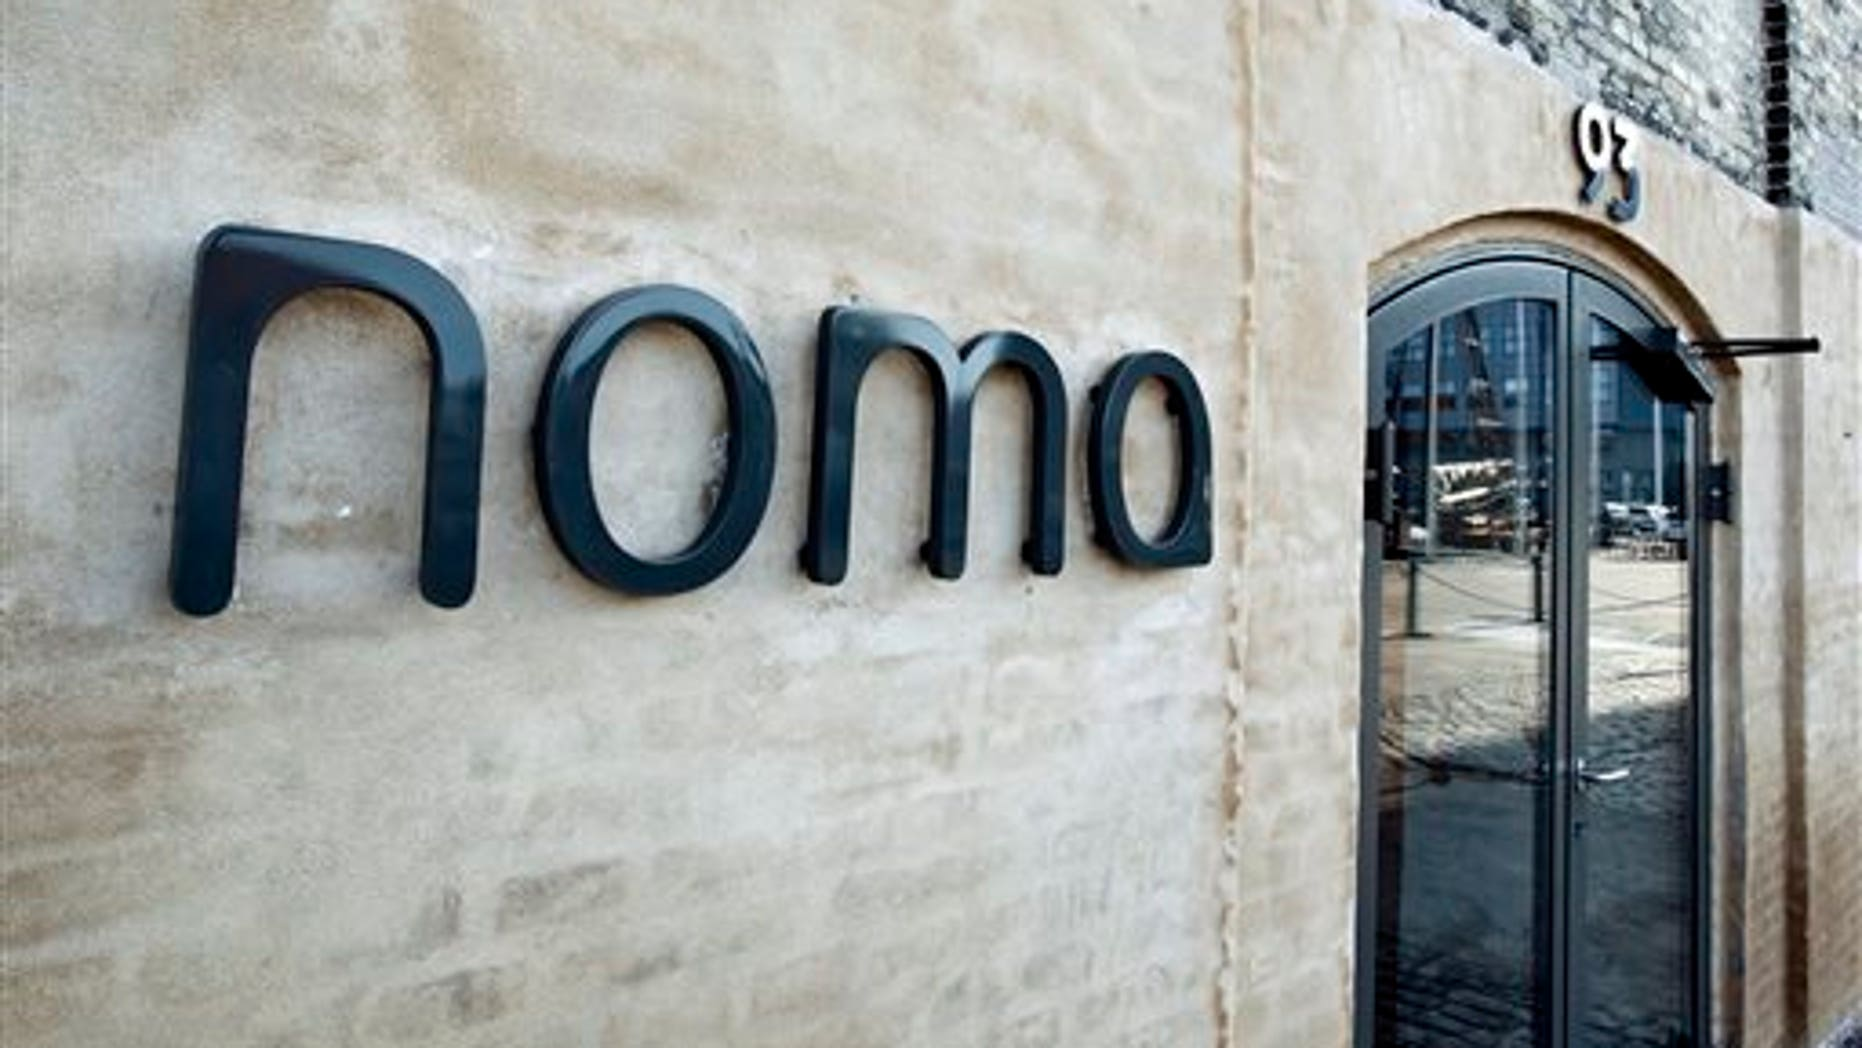 FILE – This is a March 14, 2012  file photo of Danish restaurant Noma in Copenhagen. Noma in Copenhagen, Denmark won the title of world's top restaurant. Noma held the No. 1 spot on Restaurant magazine's annual ranking of the world's 50 best restaurants for three years before being bested in 2013 by avant-garde eatery El Celler de Can Roca in Girona, Spain. During a ceremony Monday in London, Noma reclaimed the top spot while El Celler fell to No. 2. (AP Photo/POLFOTO, Jens Dresling, file)  DENMARK OUT.